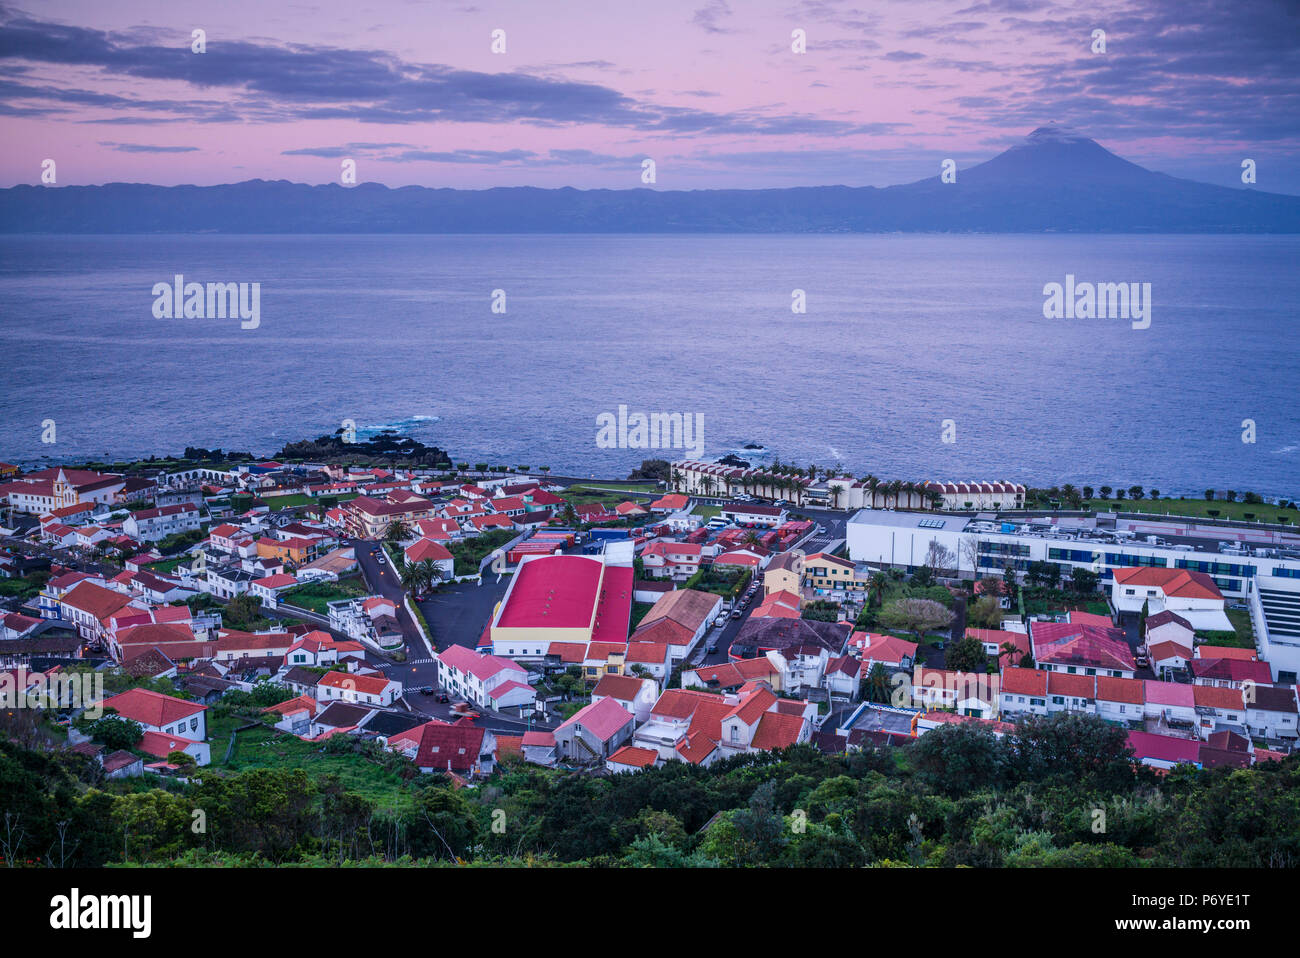 Portugal, Azores, Sao Jorge, Velas, Dawn Photo Stock